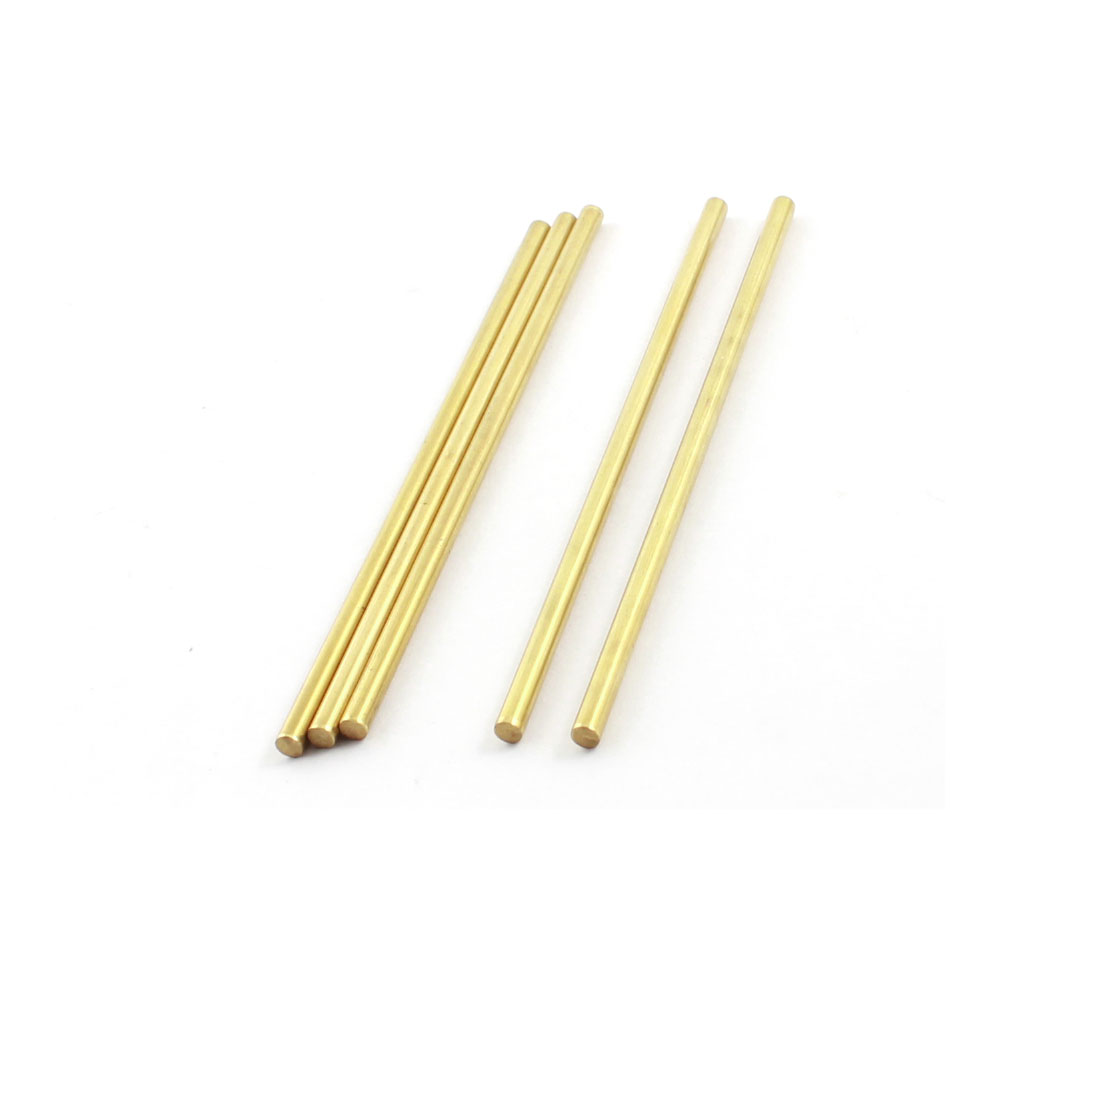 5pcs 3mm x 90mm Brass Tone Round Rod Bar Shaft Spare Part for DIY RC Car Racer